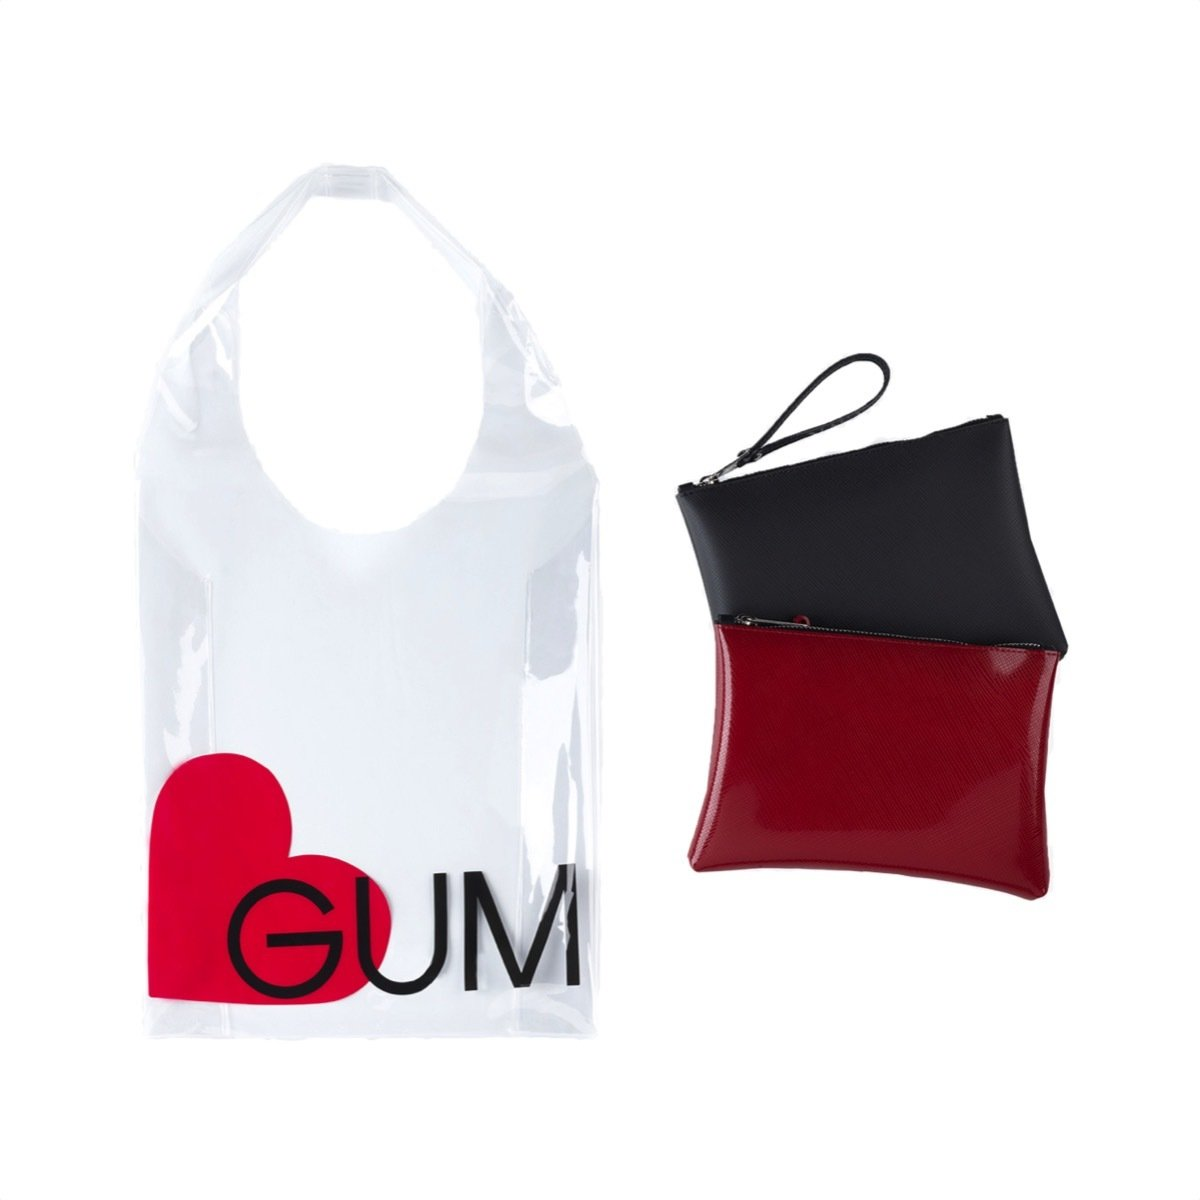 GUM - Shopper Limited Edition Heart + 1 pochette Numbers